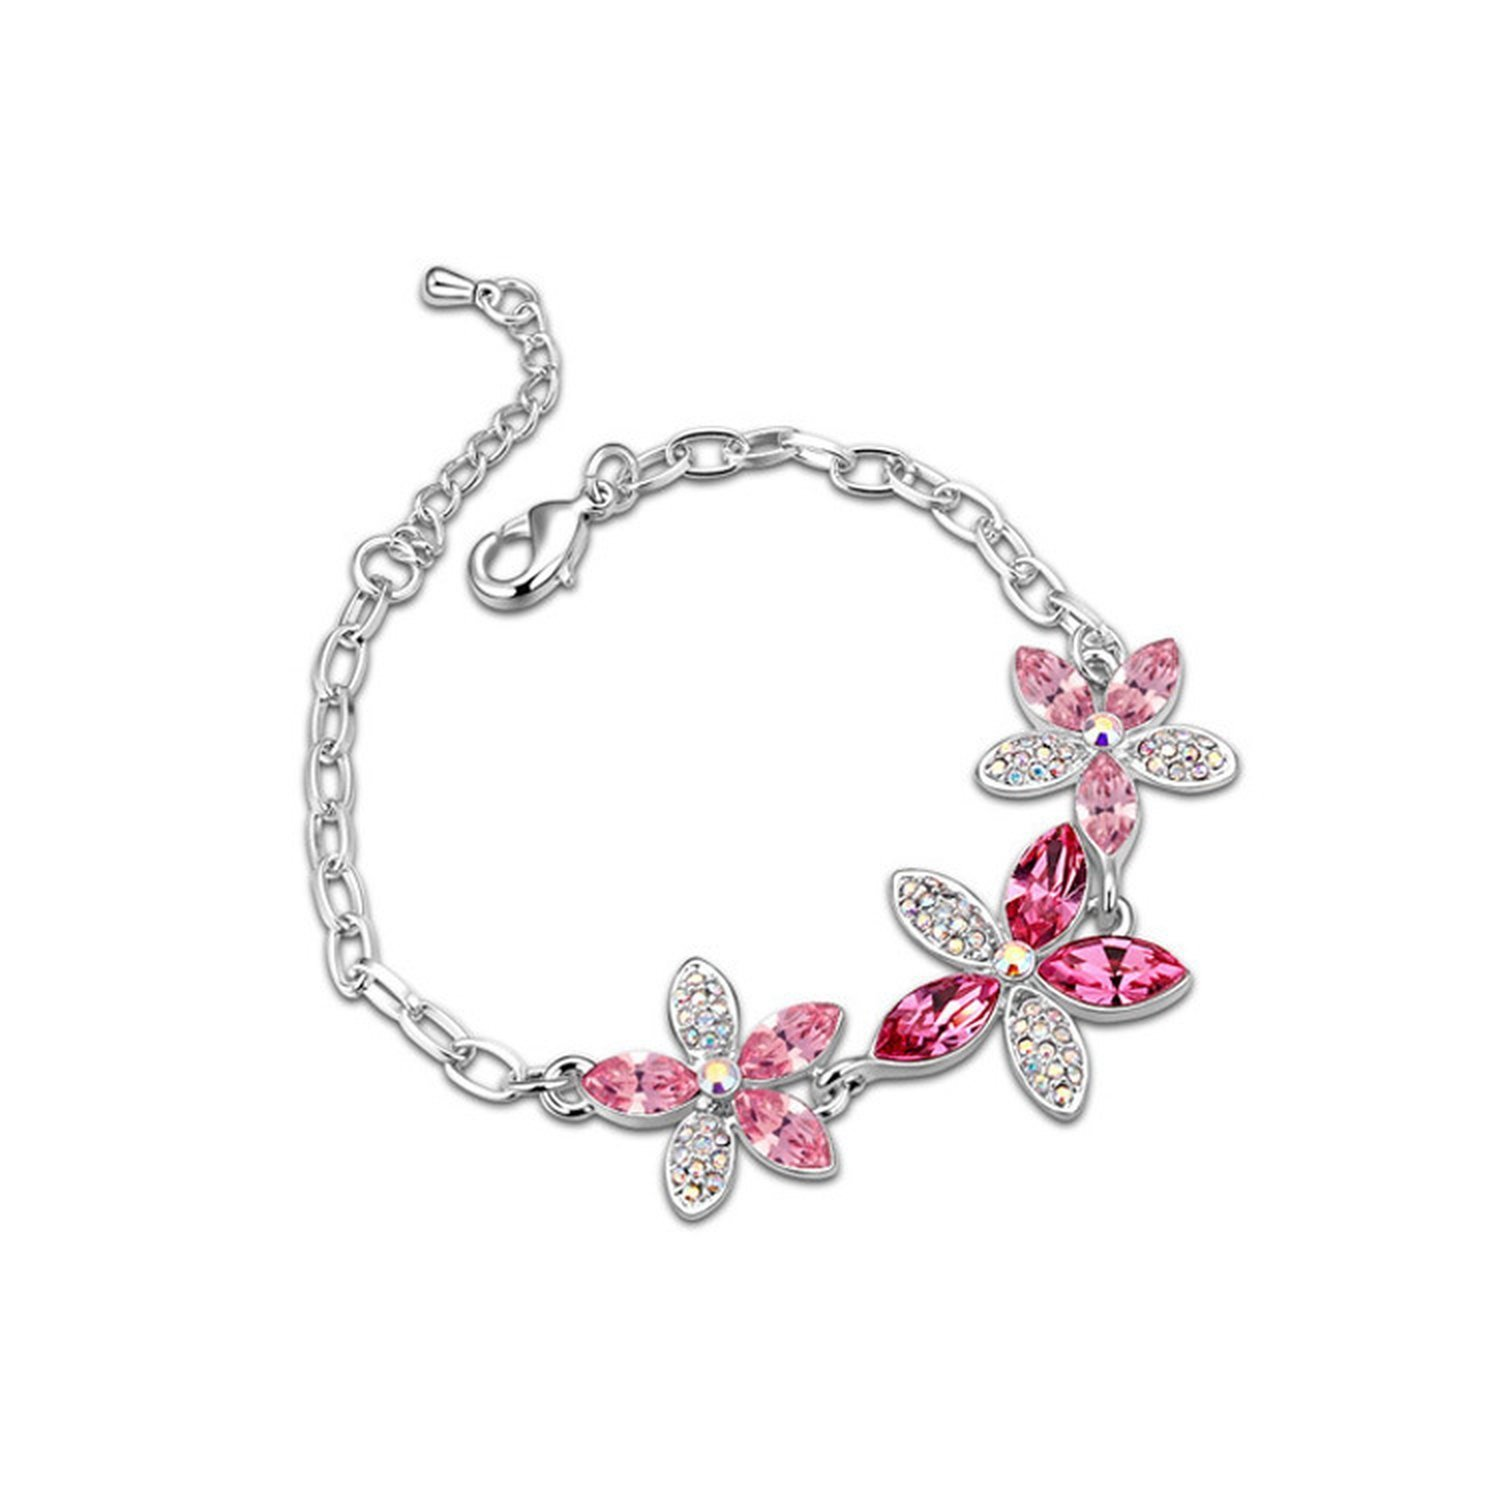 KEBINAI Swarovski Elements Crystal Bracelet Flower Pinellia Korean Fine Diamonds,Russian